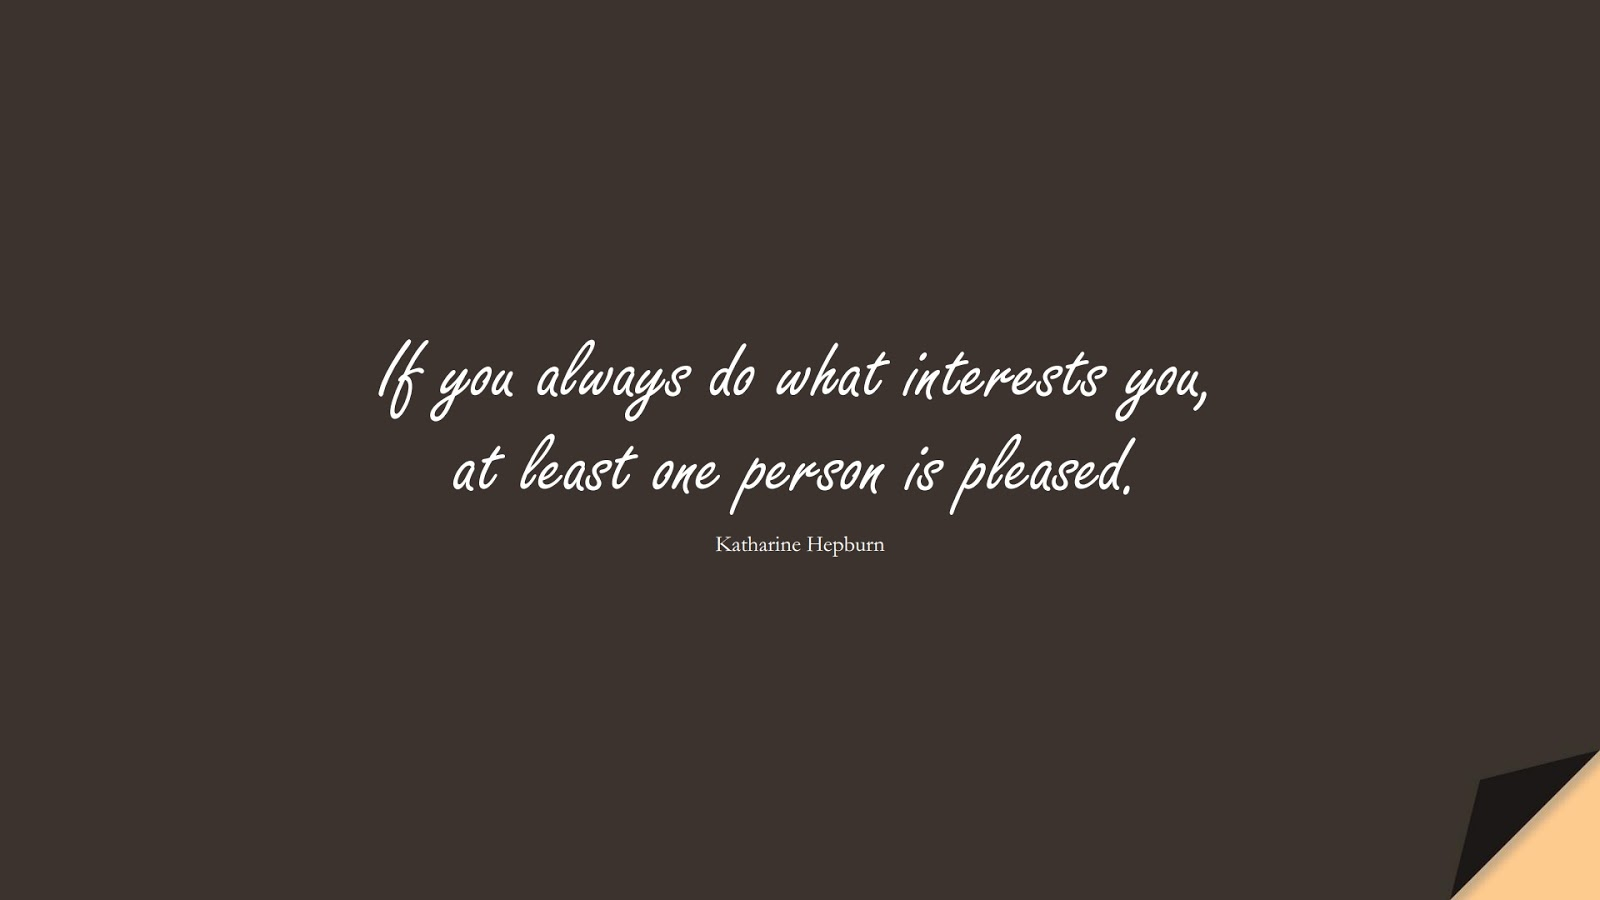 If you always do what interests you, at least one person is pleased. (Katharine Hepburn);  #InspirationalQuotes